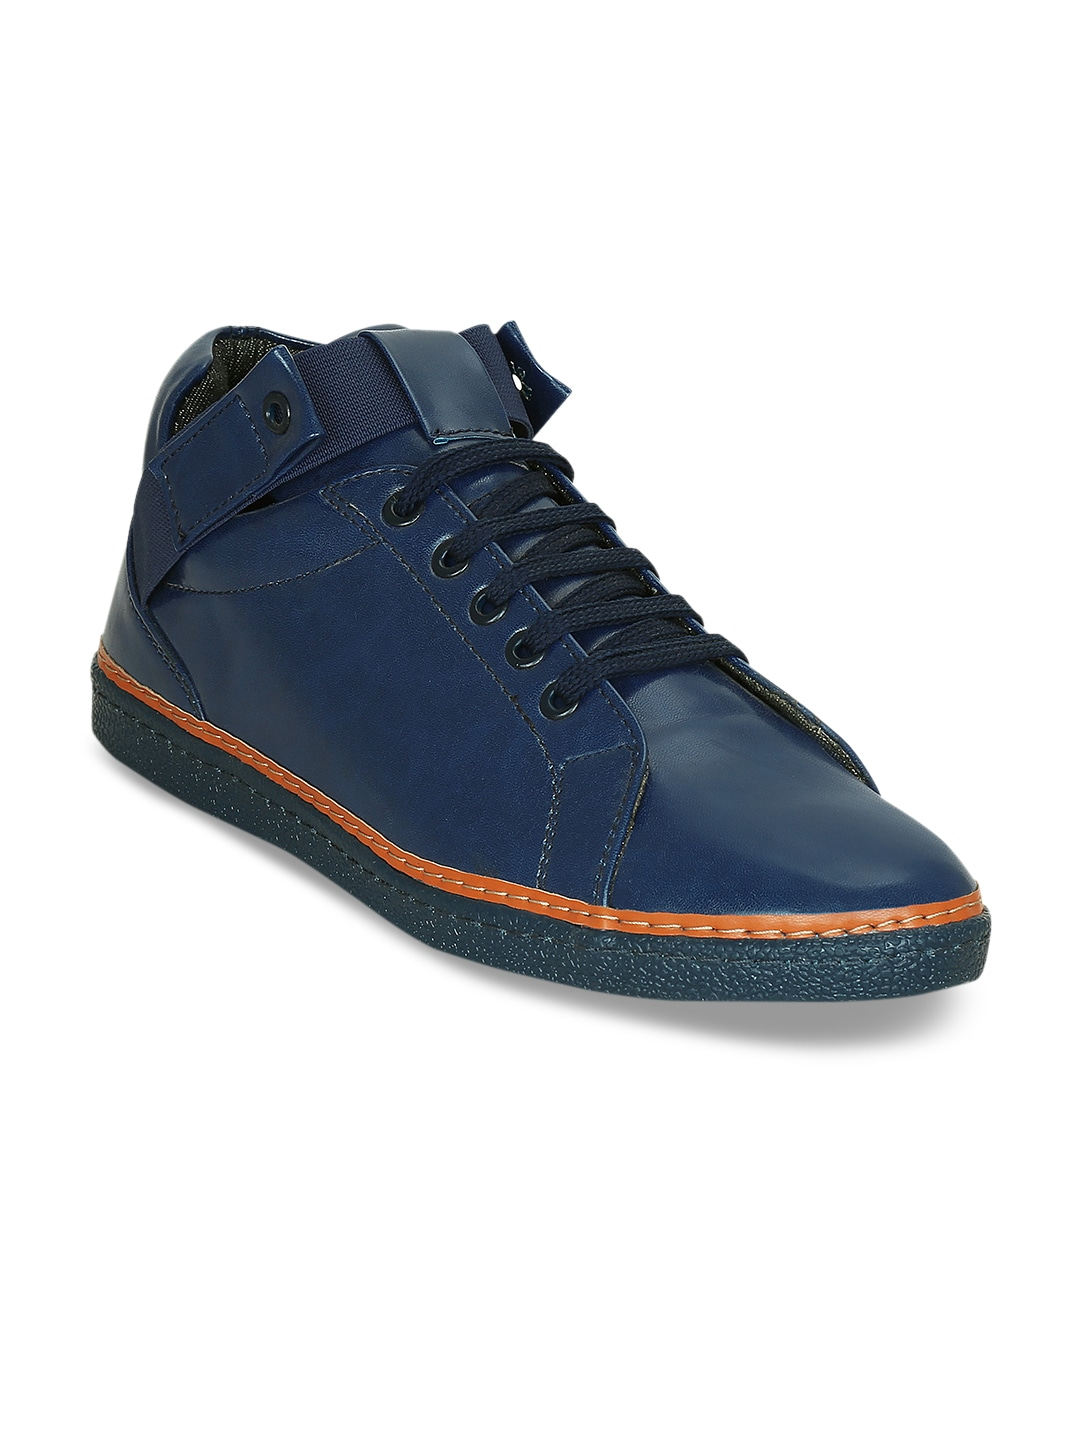 buy online d2b61 2897d Casual Shoes For Men - Buy Casual   Flat Shoes For Men   Myntra